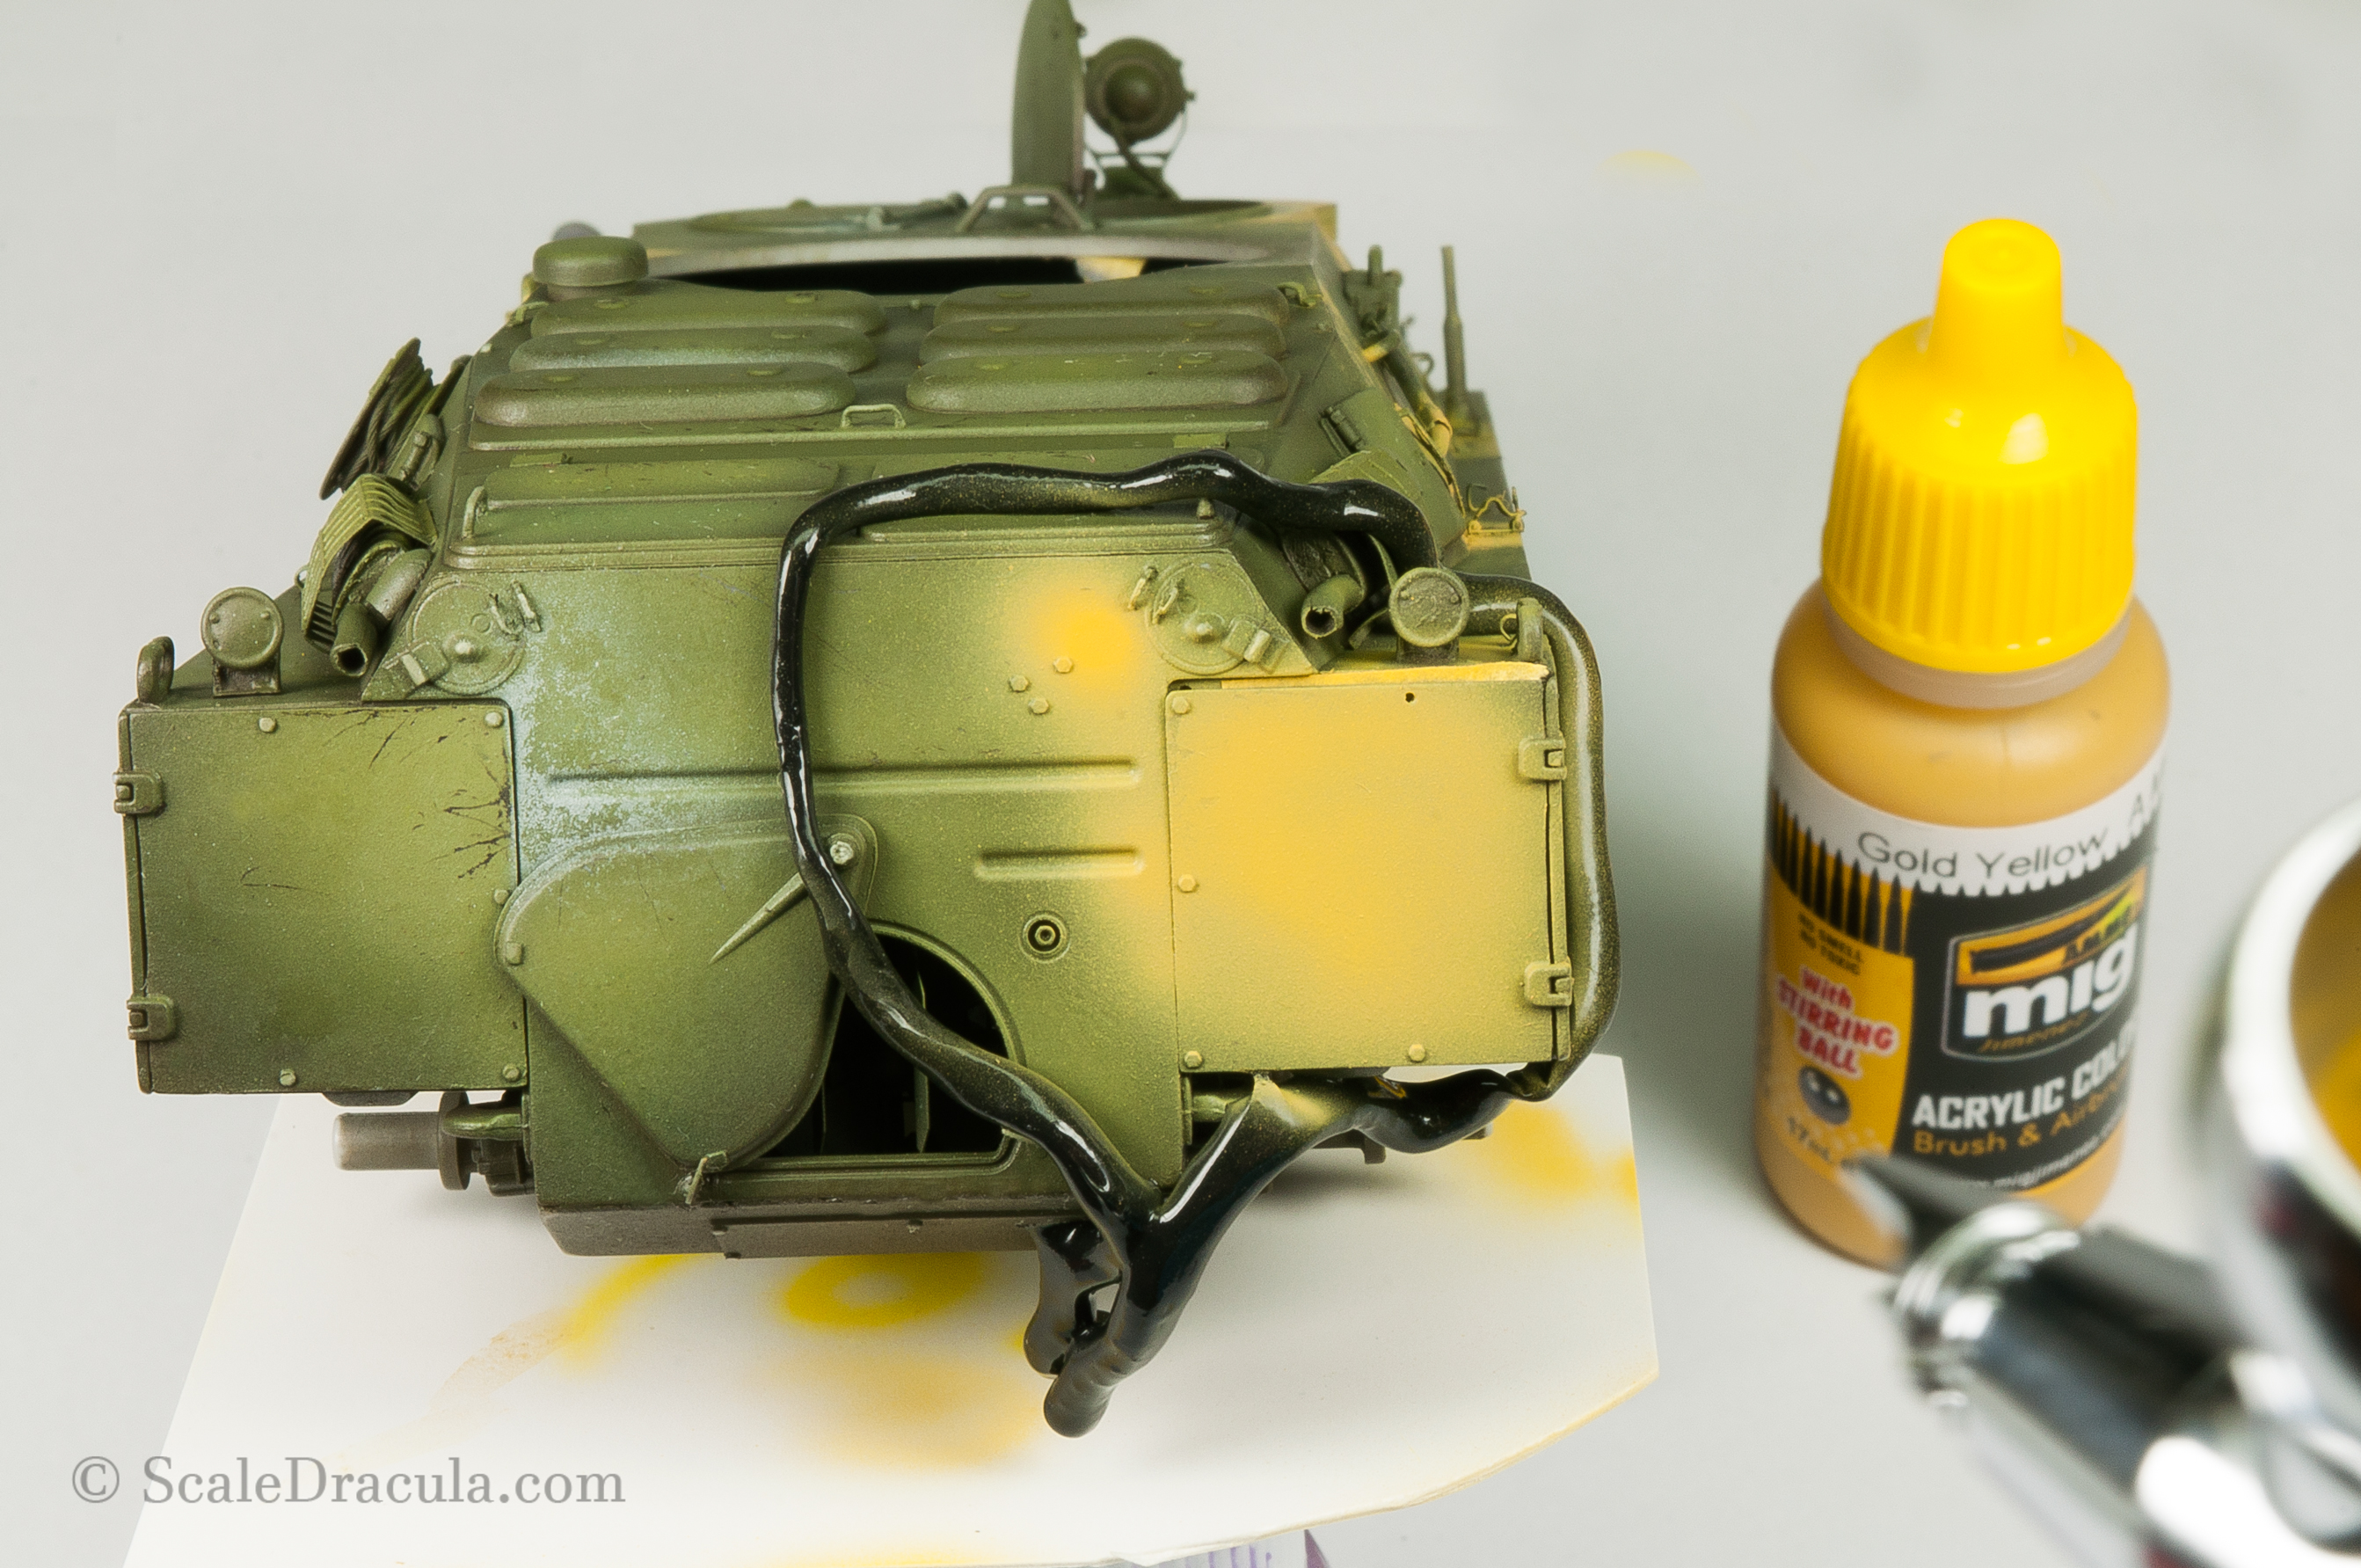 Painting the yellow camouflage, BRDM-2 by Trumpeter